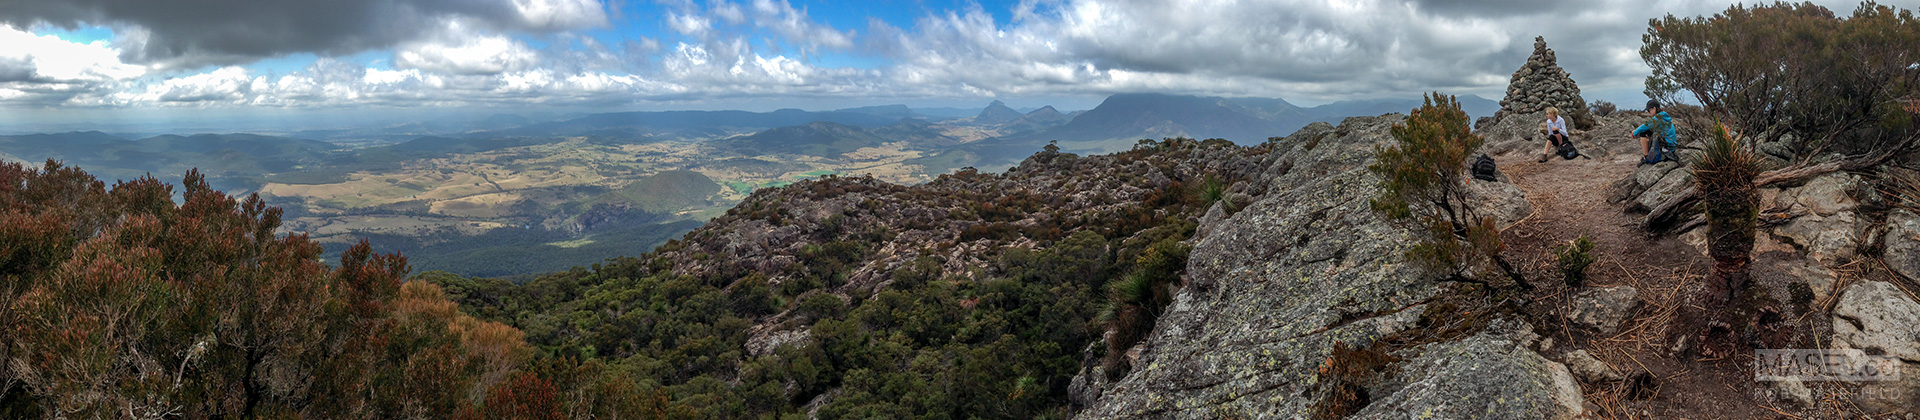 Stunning 360 degree views from the top of Mount Maroon.